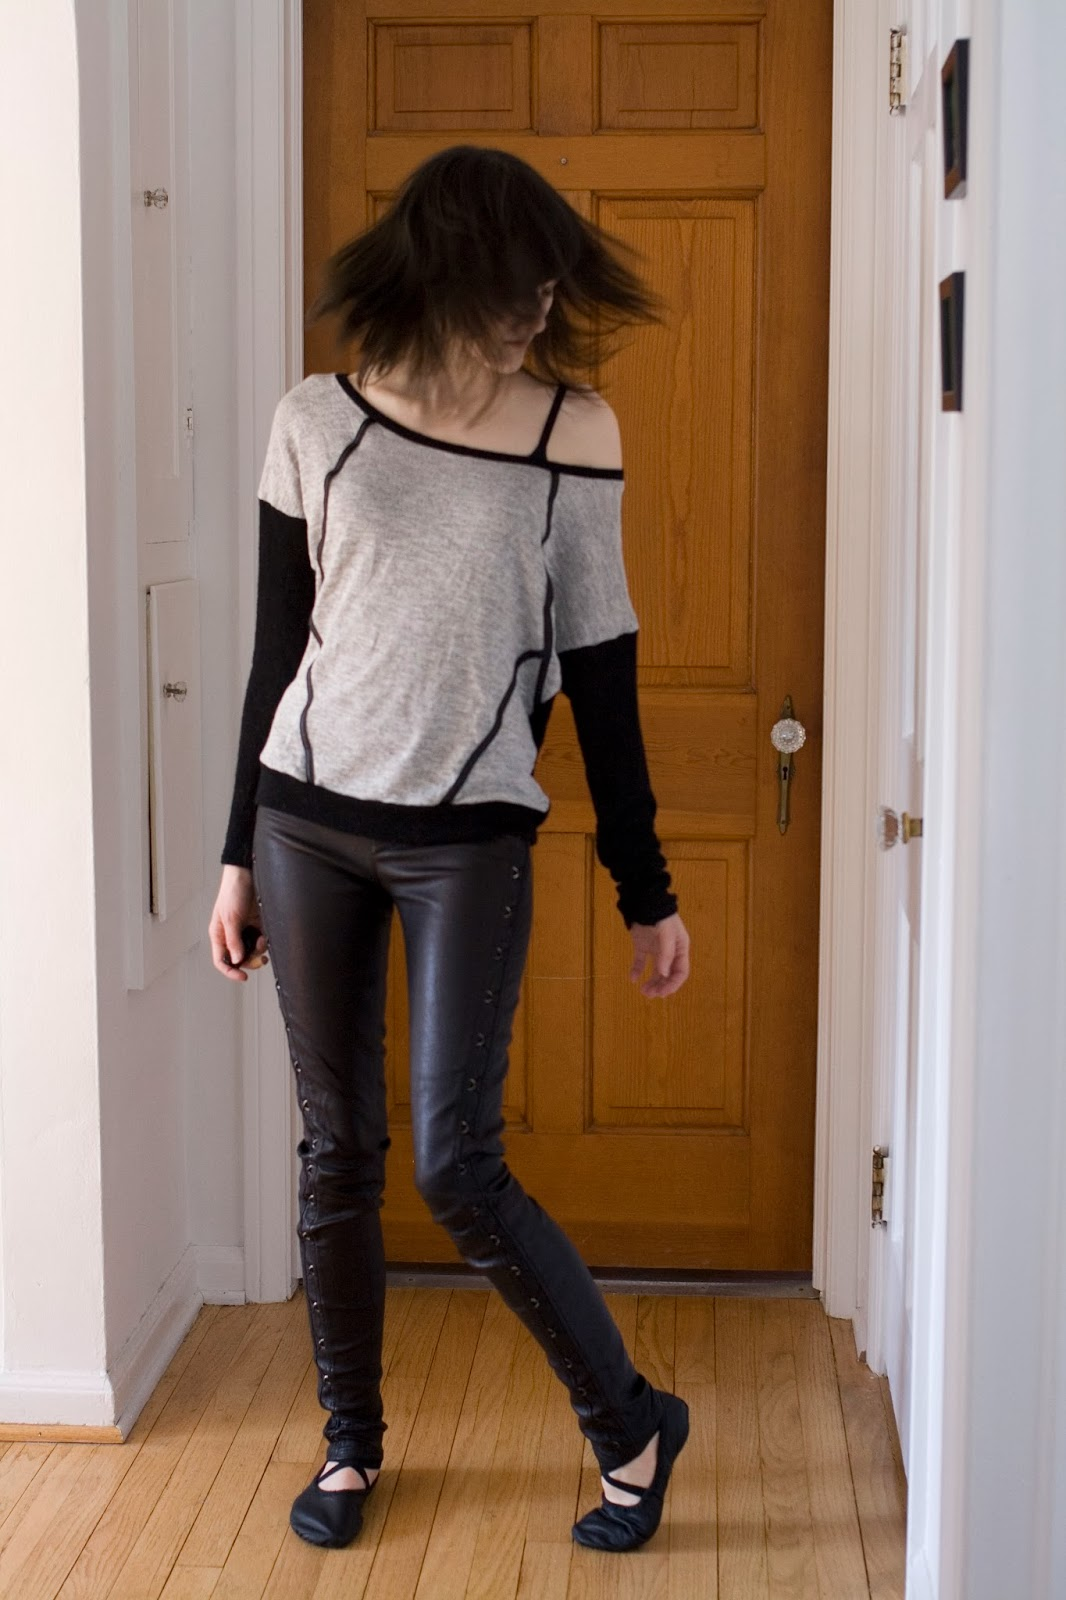 Bombasine- Shirt: Lovely 153 Leggings: Helmut Lang Shoes: Sansha